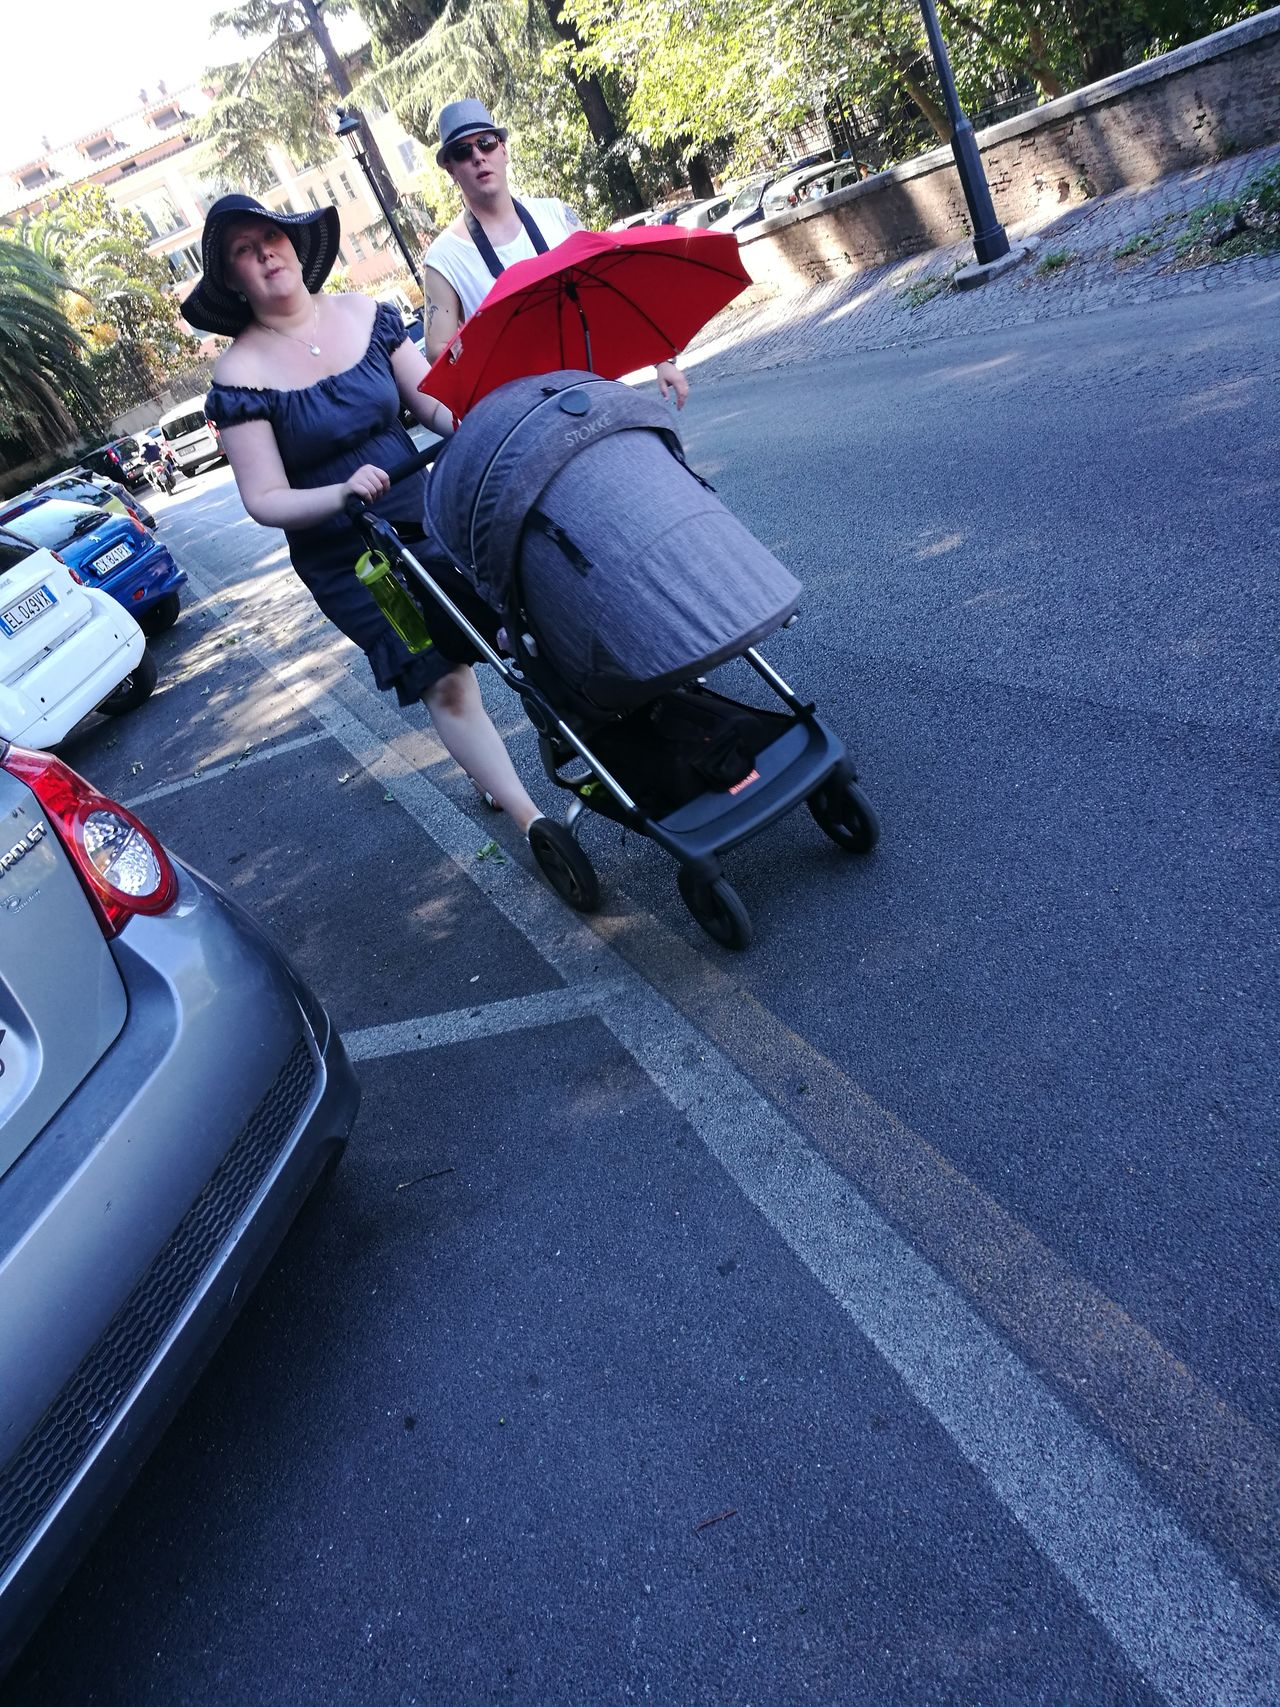 Car Transportation Day Mode Of Transport Full Length Road Two People People Outdoors Childhood Real People Child Adult Color Photography The Purist (no Edit, No Filter) Rome Italy🇮🇹 Genitori💙 Famiglia ❤️ Family❤